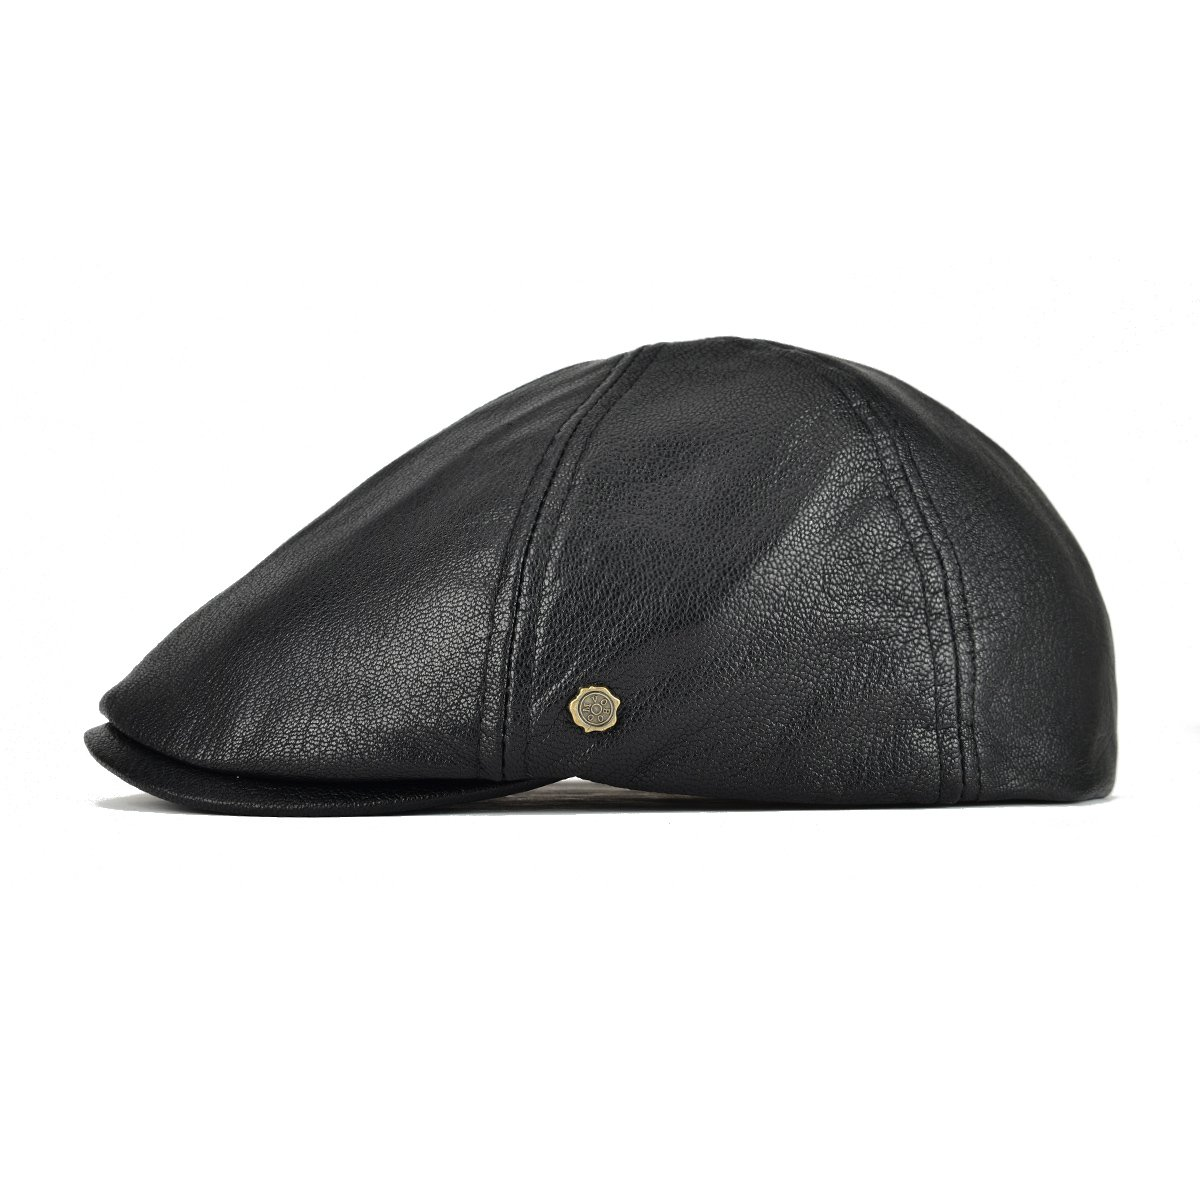 11eb93b3786 VOBOOM Lambskin Leather Ivy Caps Classic Ivy Hat Cap 6 Pannel Cabbie Beret  hat at Amazon Men s Clothing store